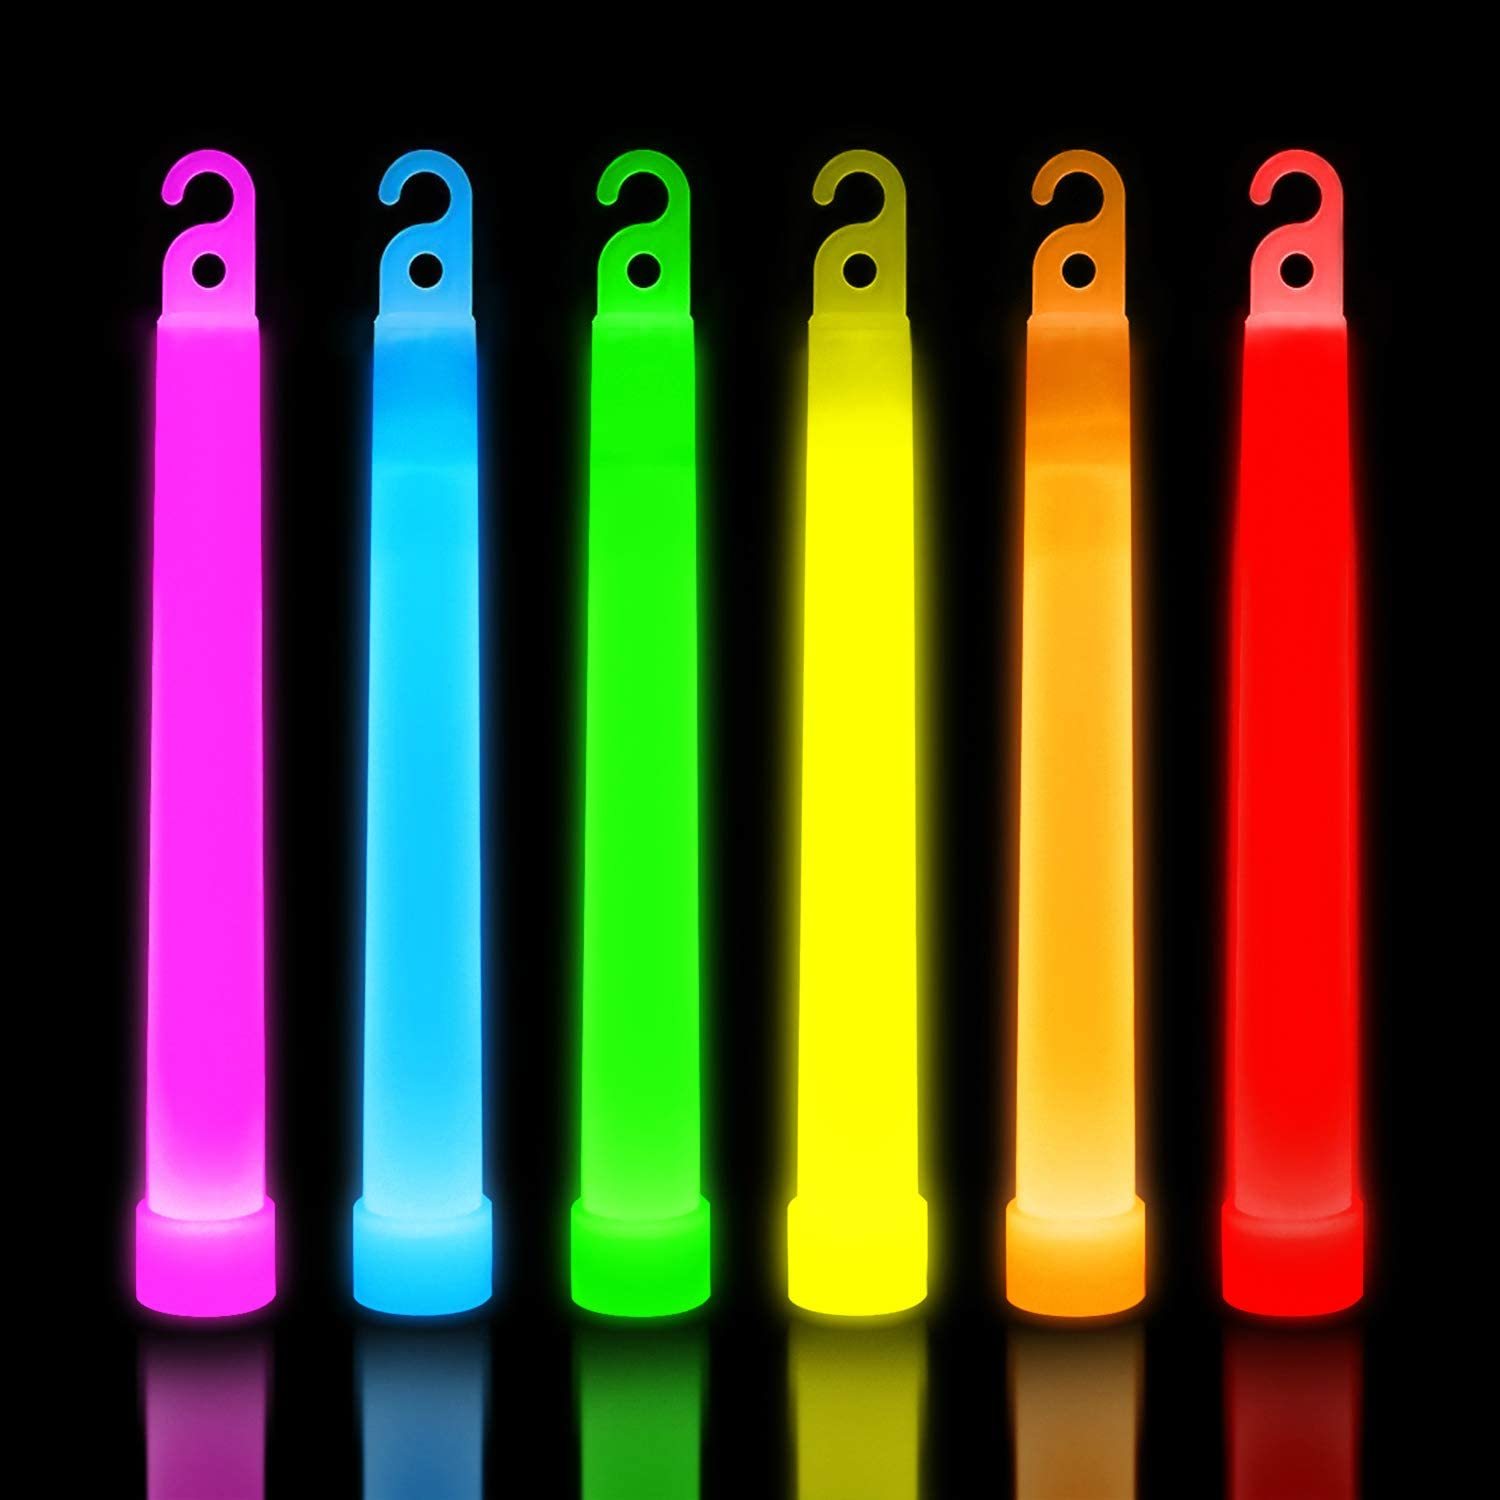 30 Ultra Bright Glow Sticks - Emergency Light Sticks for Camping Accessories, Parties, Hurricane Supplies, Earthquake, Survival Kit and More